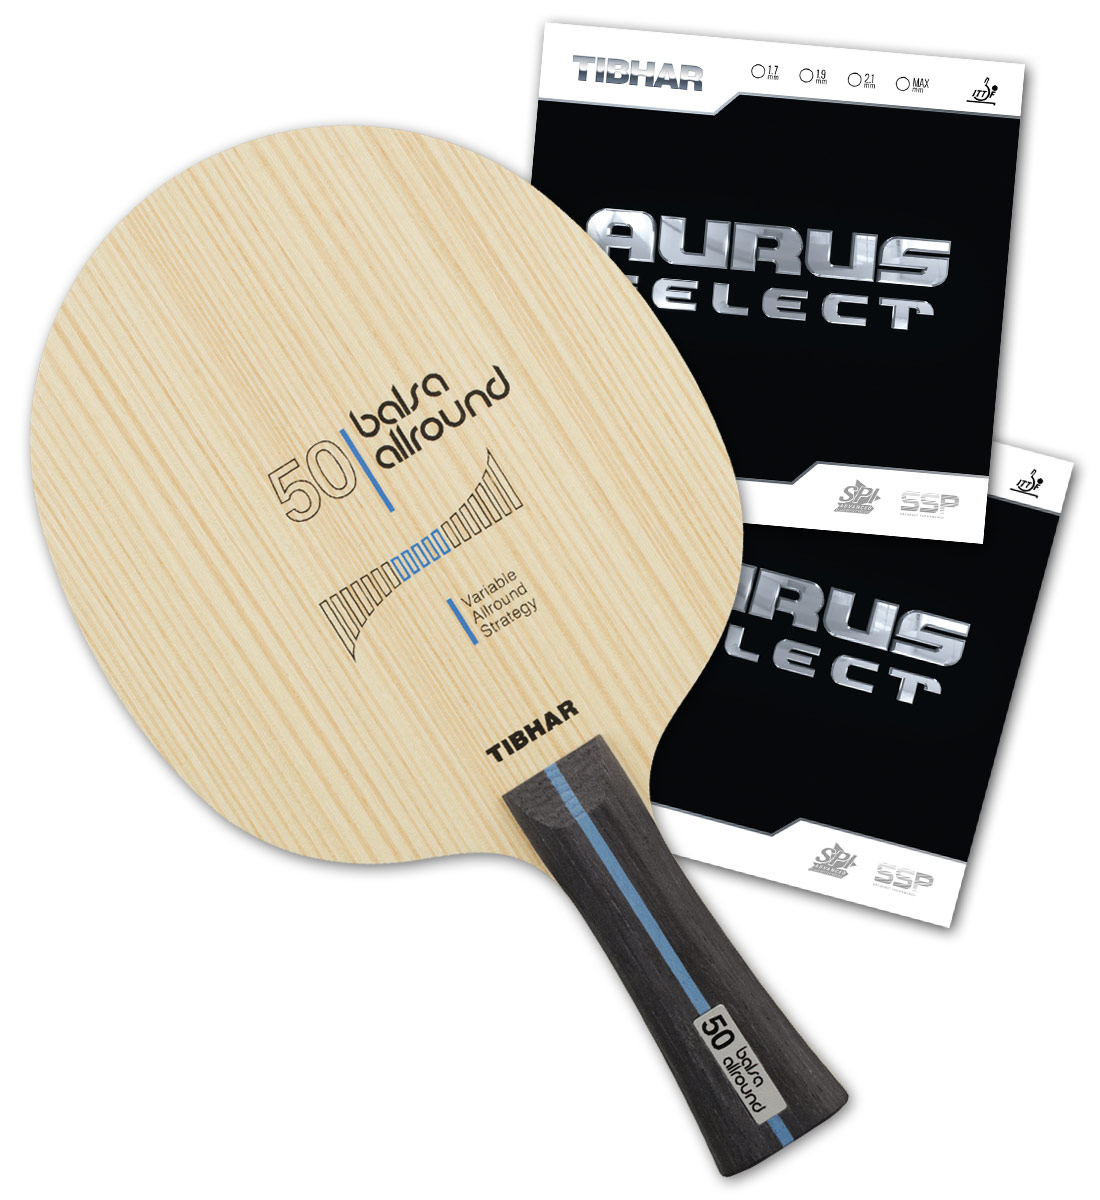 4bb5ae2800 PRO SPECIAL: Tibhar Balsa Allround 50 with Aurus Select-Paddle Palace